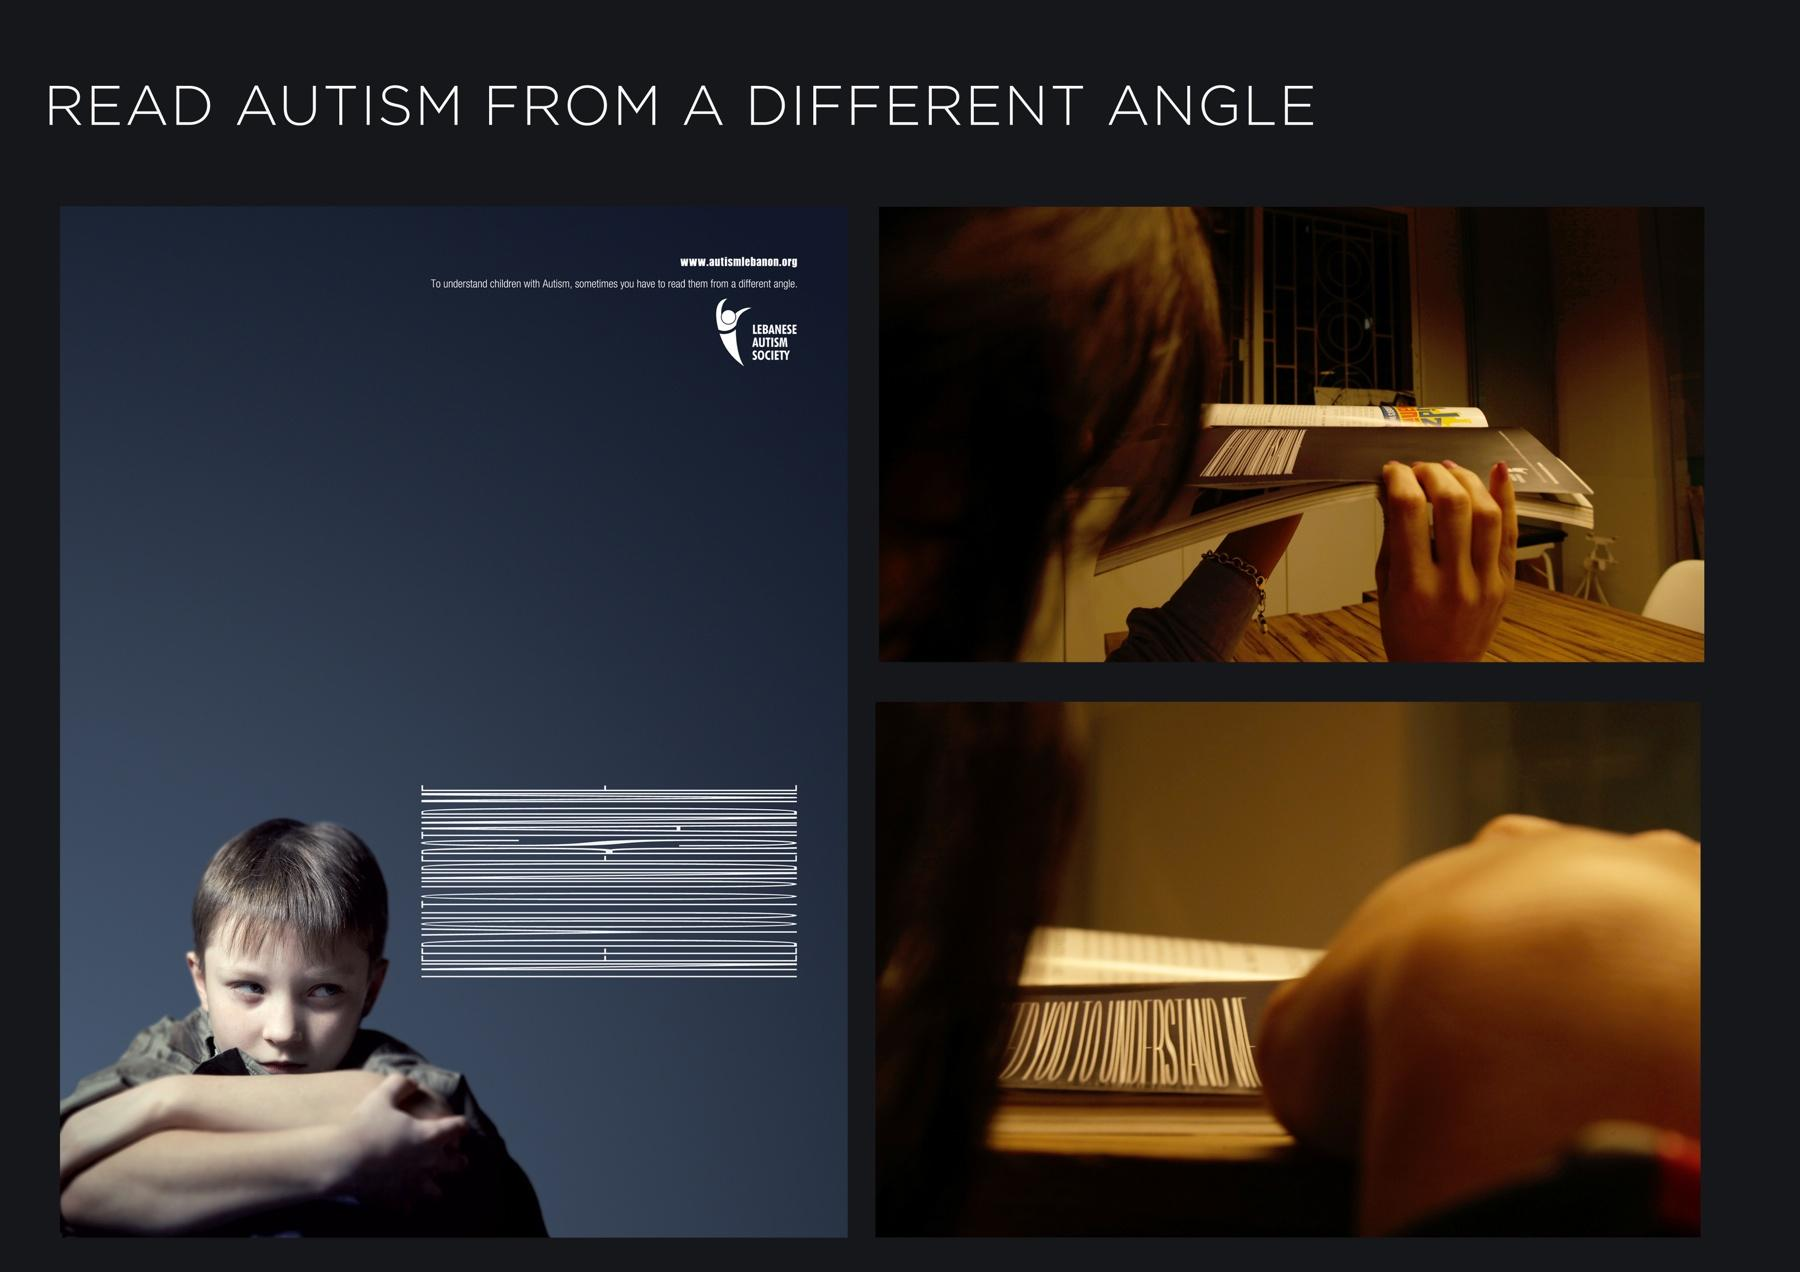 Lebanese Autism Society Direct Ad -  Read autism from a different angle